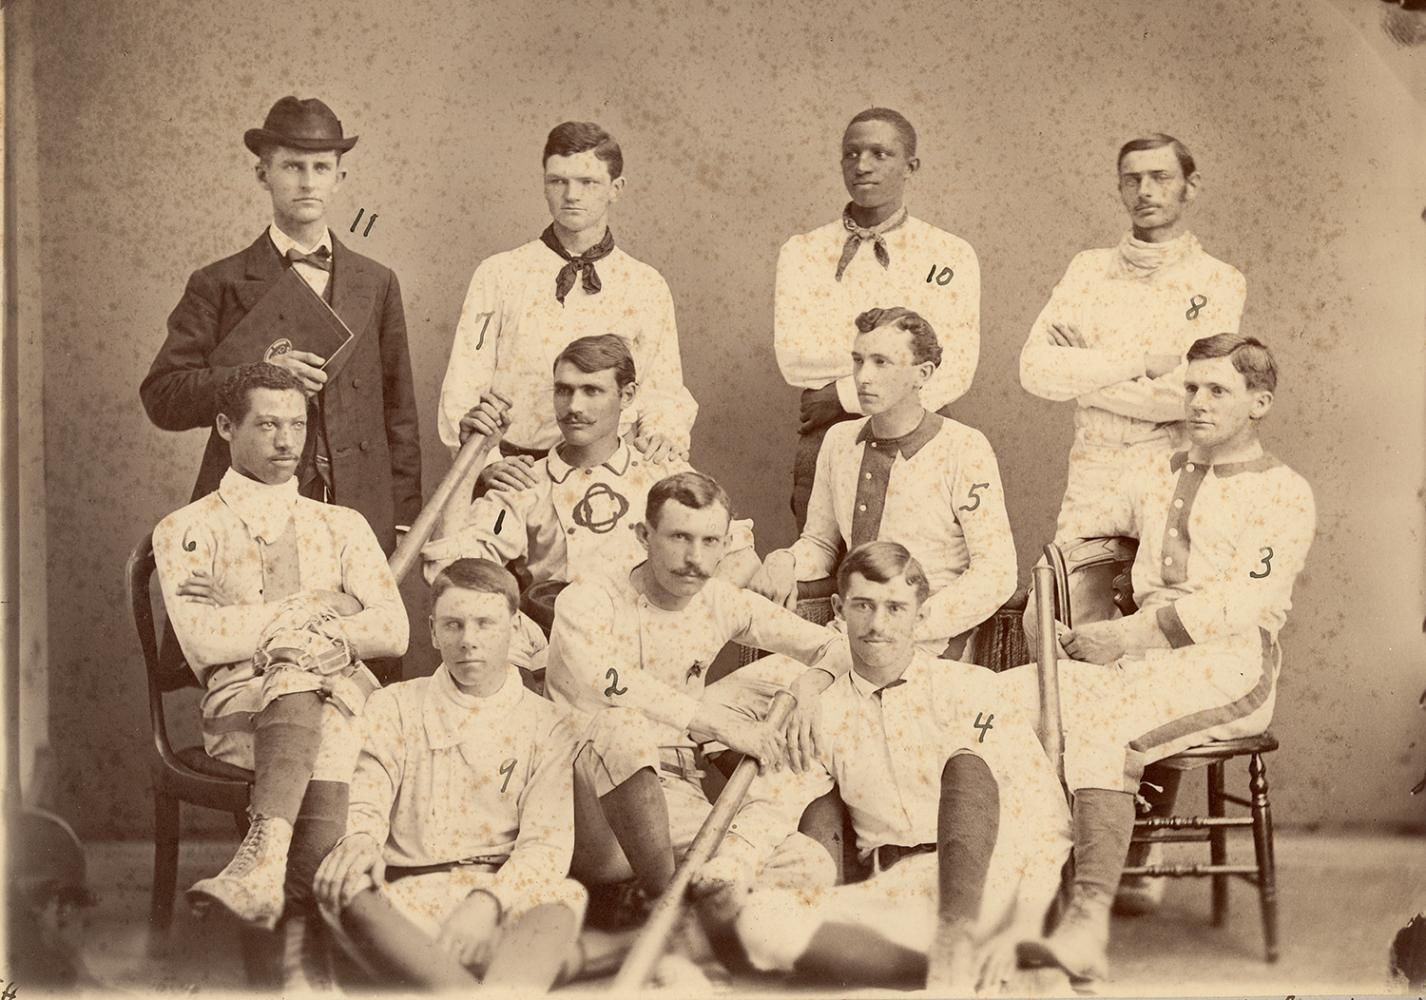 Moses Fleetwood Walker, 6, was a member of Oberlin's first varsity baseball team in 1881. His brother Weldy, 10, was also on the team. They went on to become the first and second African Americans to play in the major leagues, respectively.